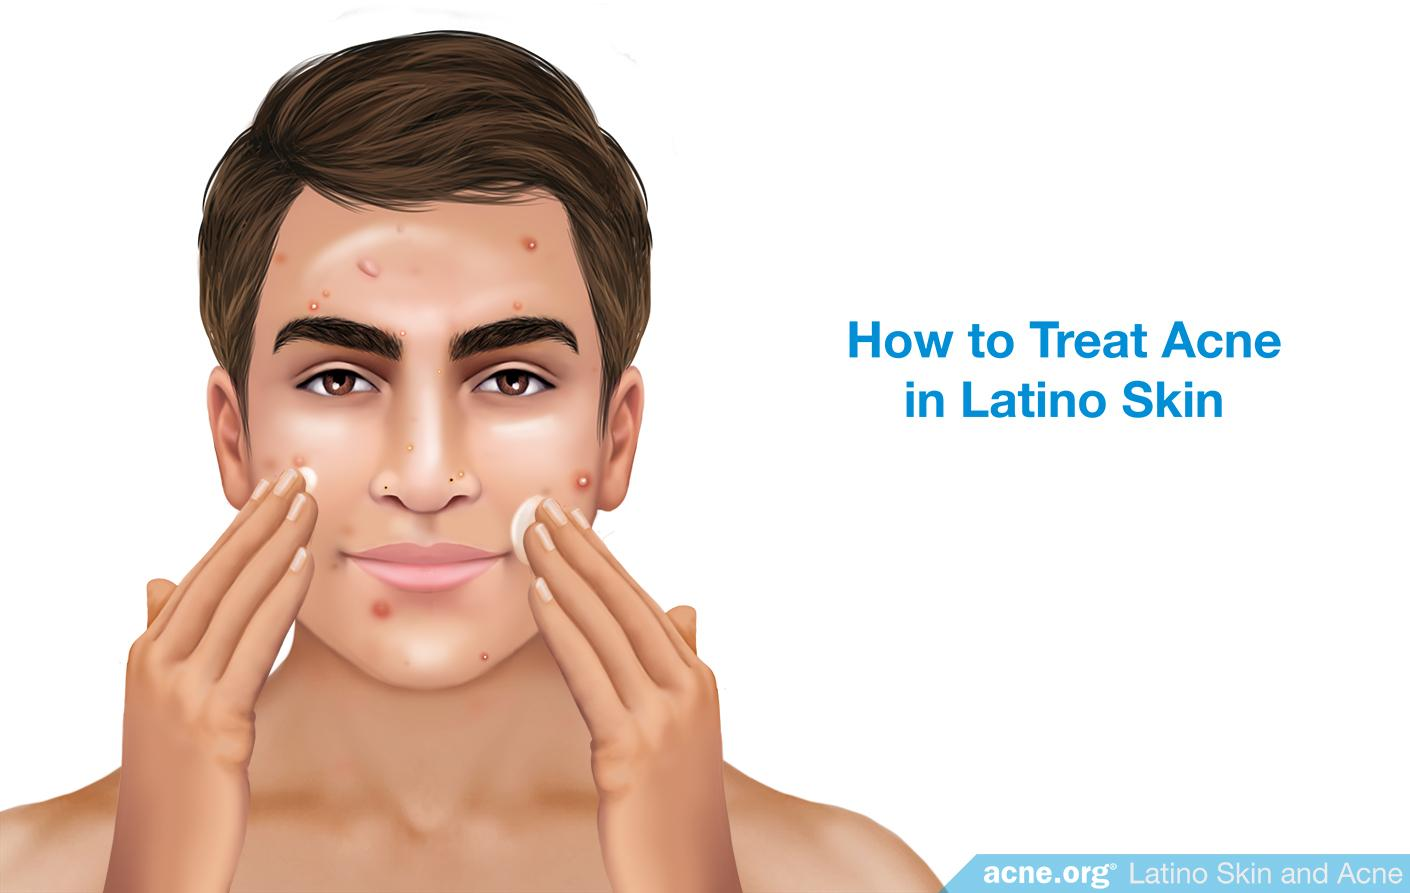 How to Treat Acne in Latino Skin